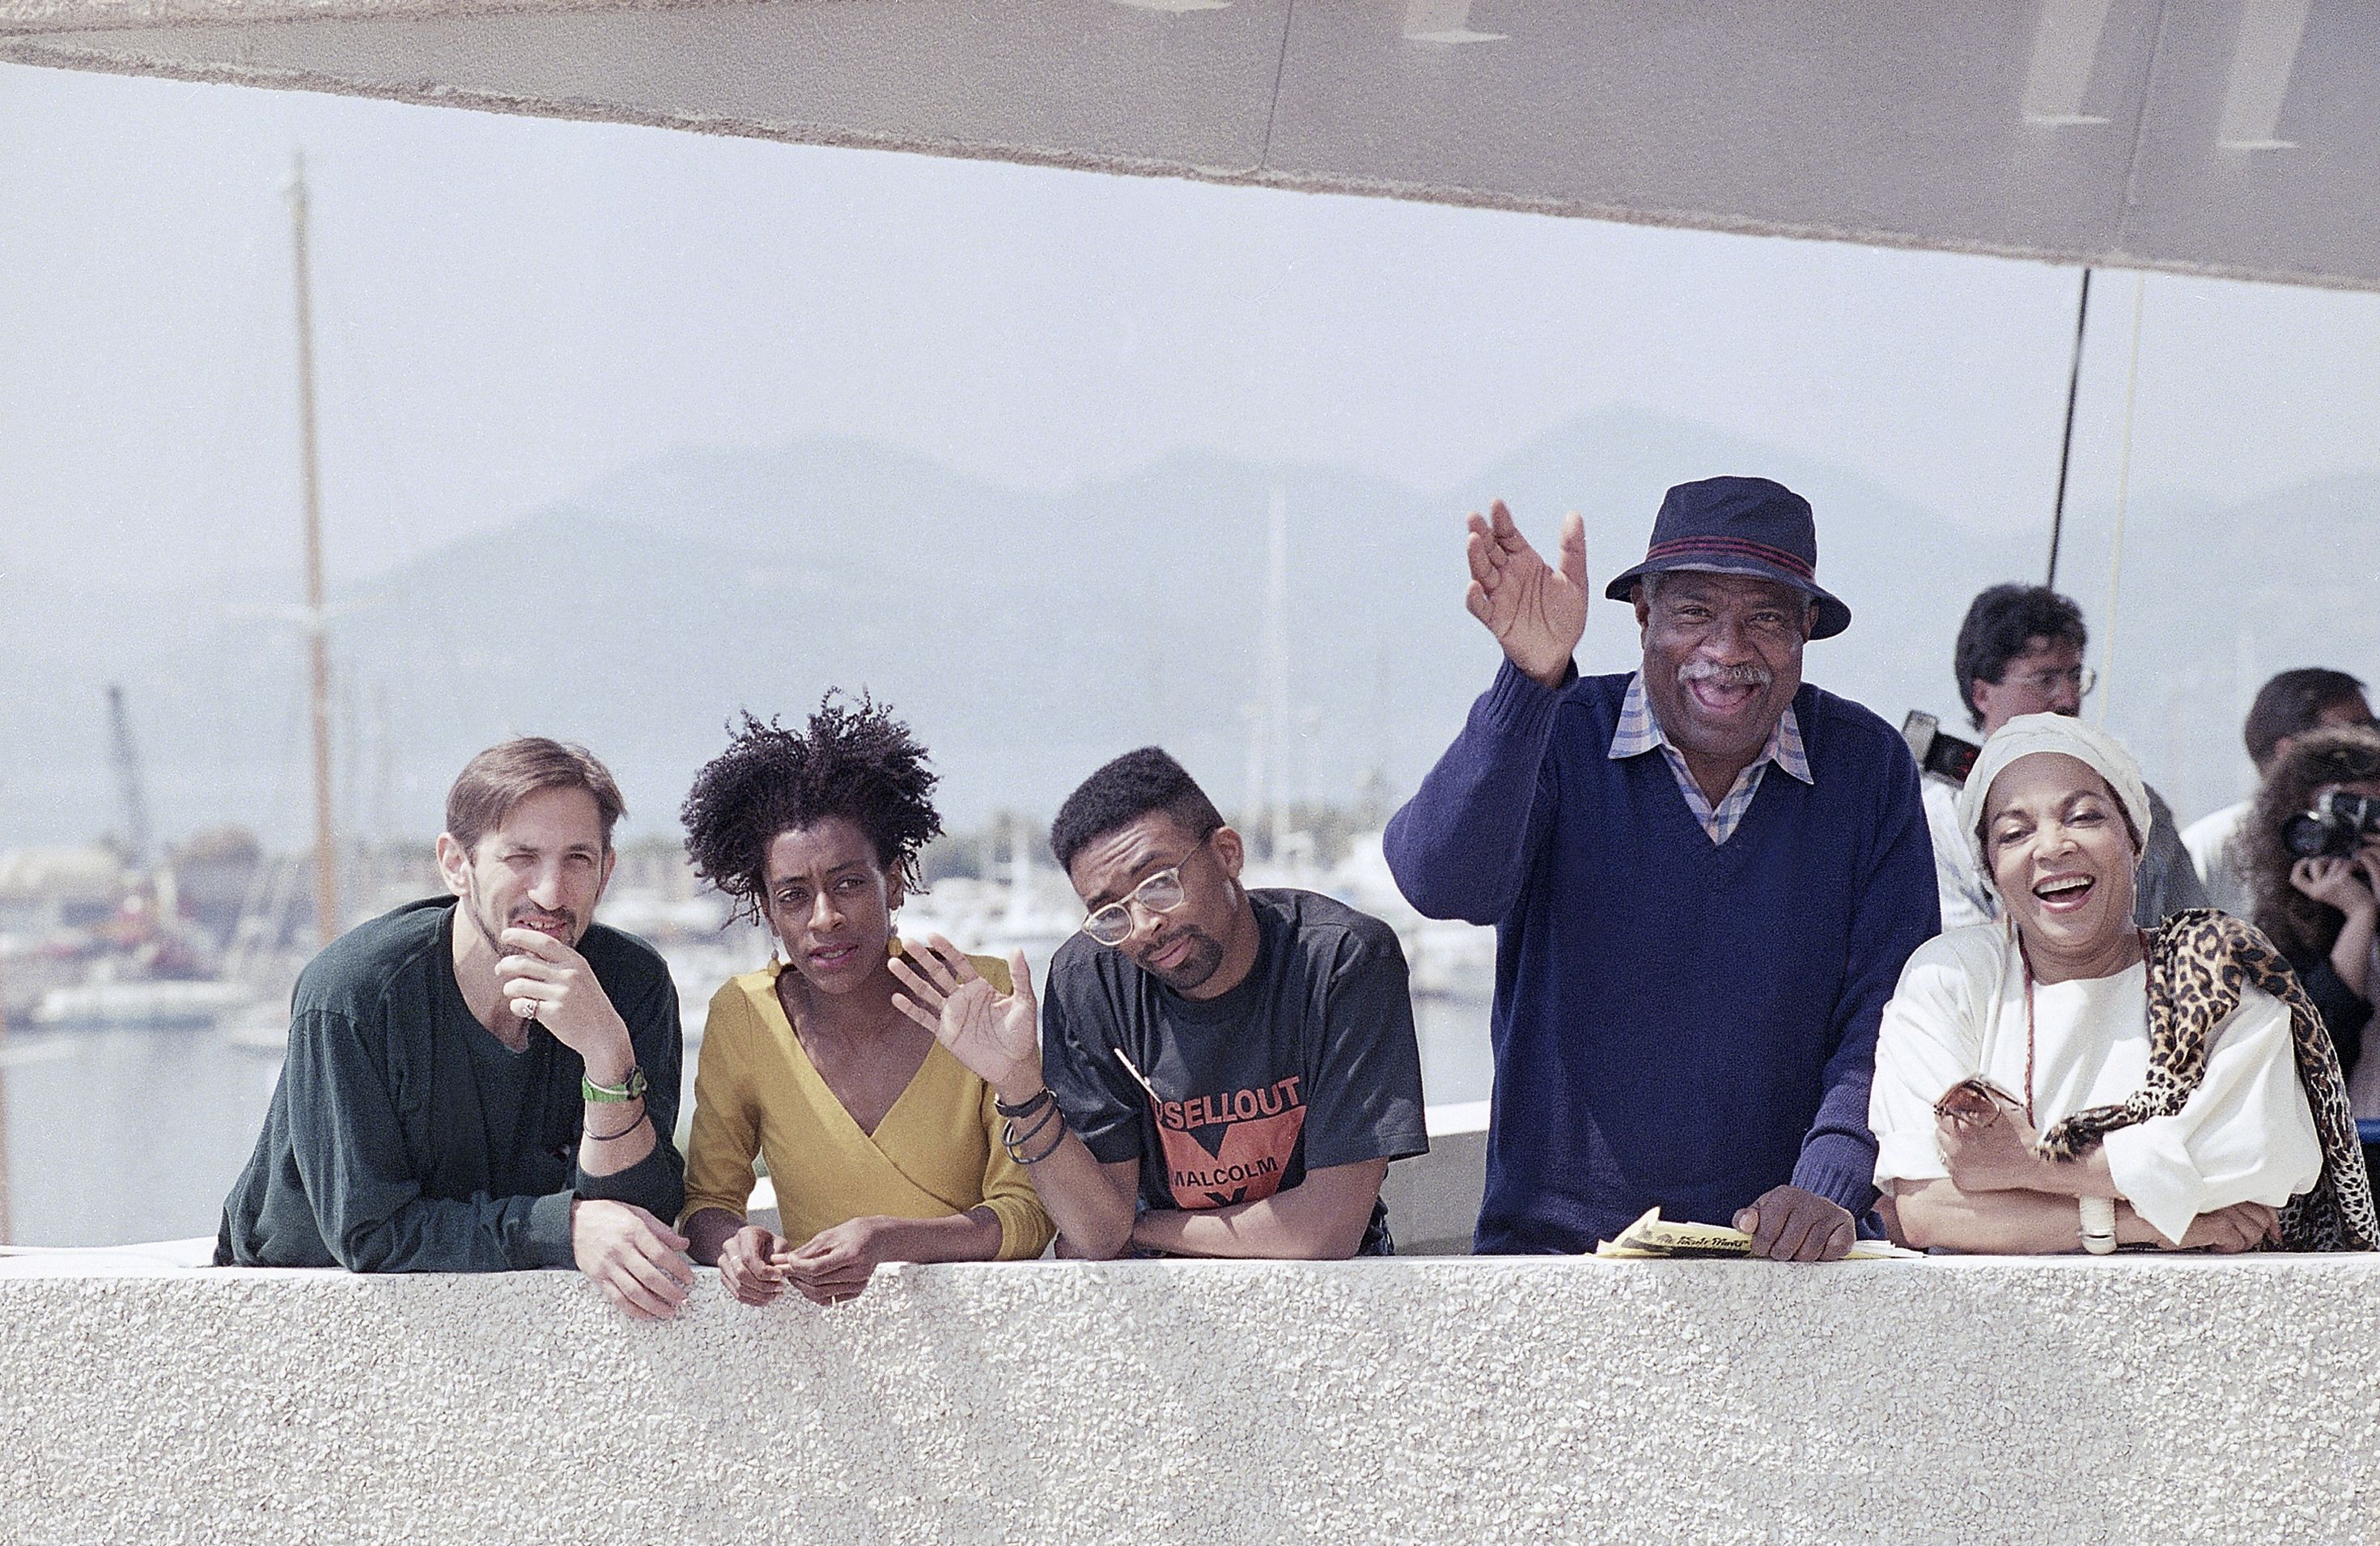 """American director Spike Lee, center, waves to photographers from the terrace of the Festival Palace in Cannes, France. Lee is promoting his film """"Do the Right Thing"""" at the Cannes Film Festival. Starring actors, from left, Richard Edson, Joie Lee, Ossie Davis and Ruby DeeSpike Lee Cannes 1989, Cannes, France"""